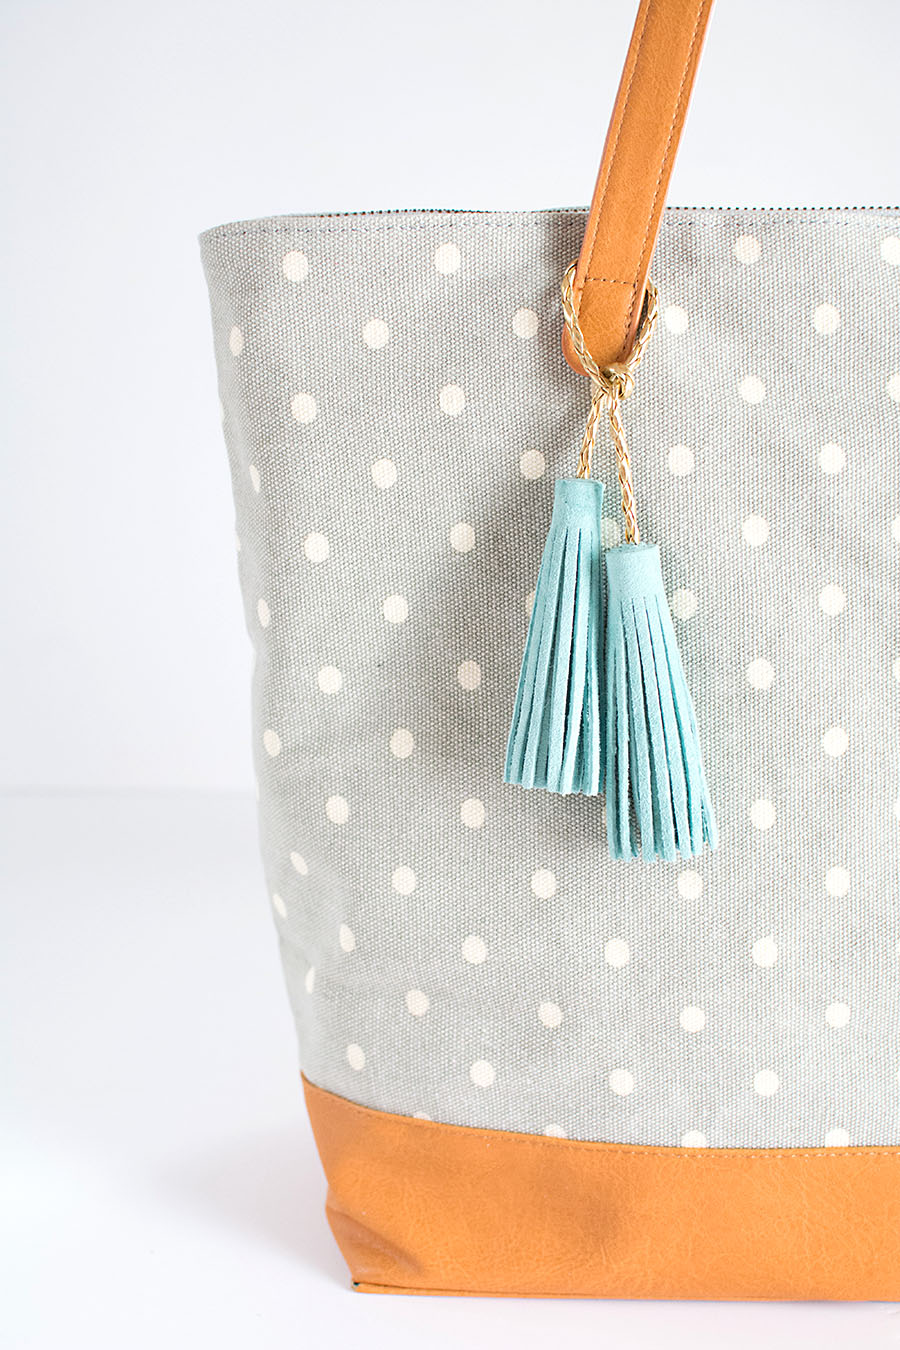 Suede leather tassels DIY